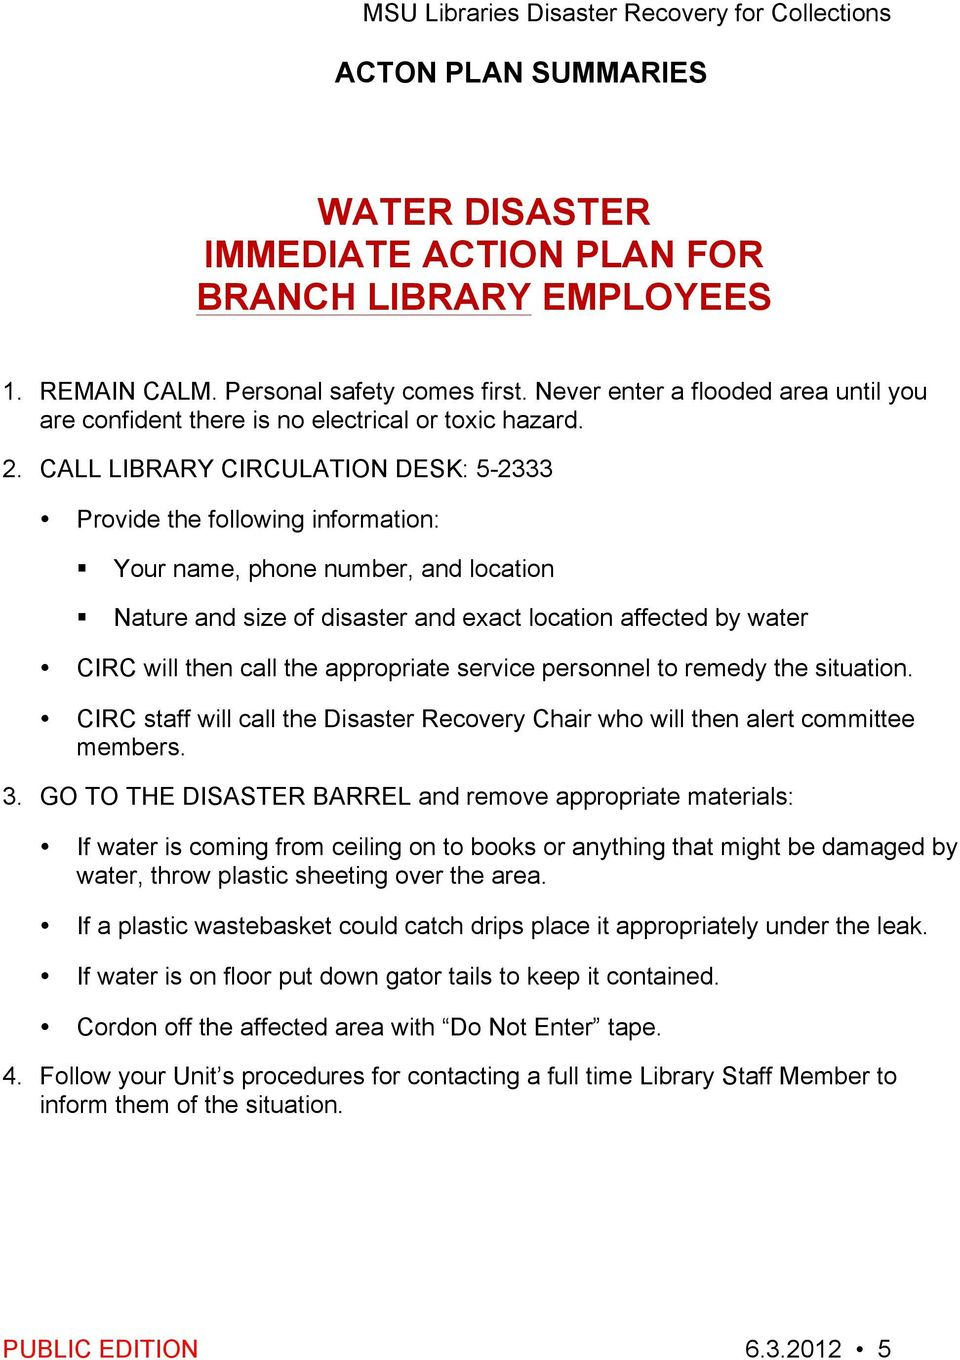 CALL LIBRARY CIRCULATION DESK: 5-2333 Provide the following information: Your name, phone number, and location Nature and size of disaster and exact location affected by water CIRC will then call the